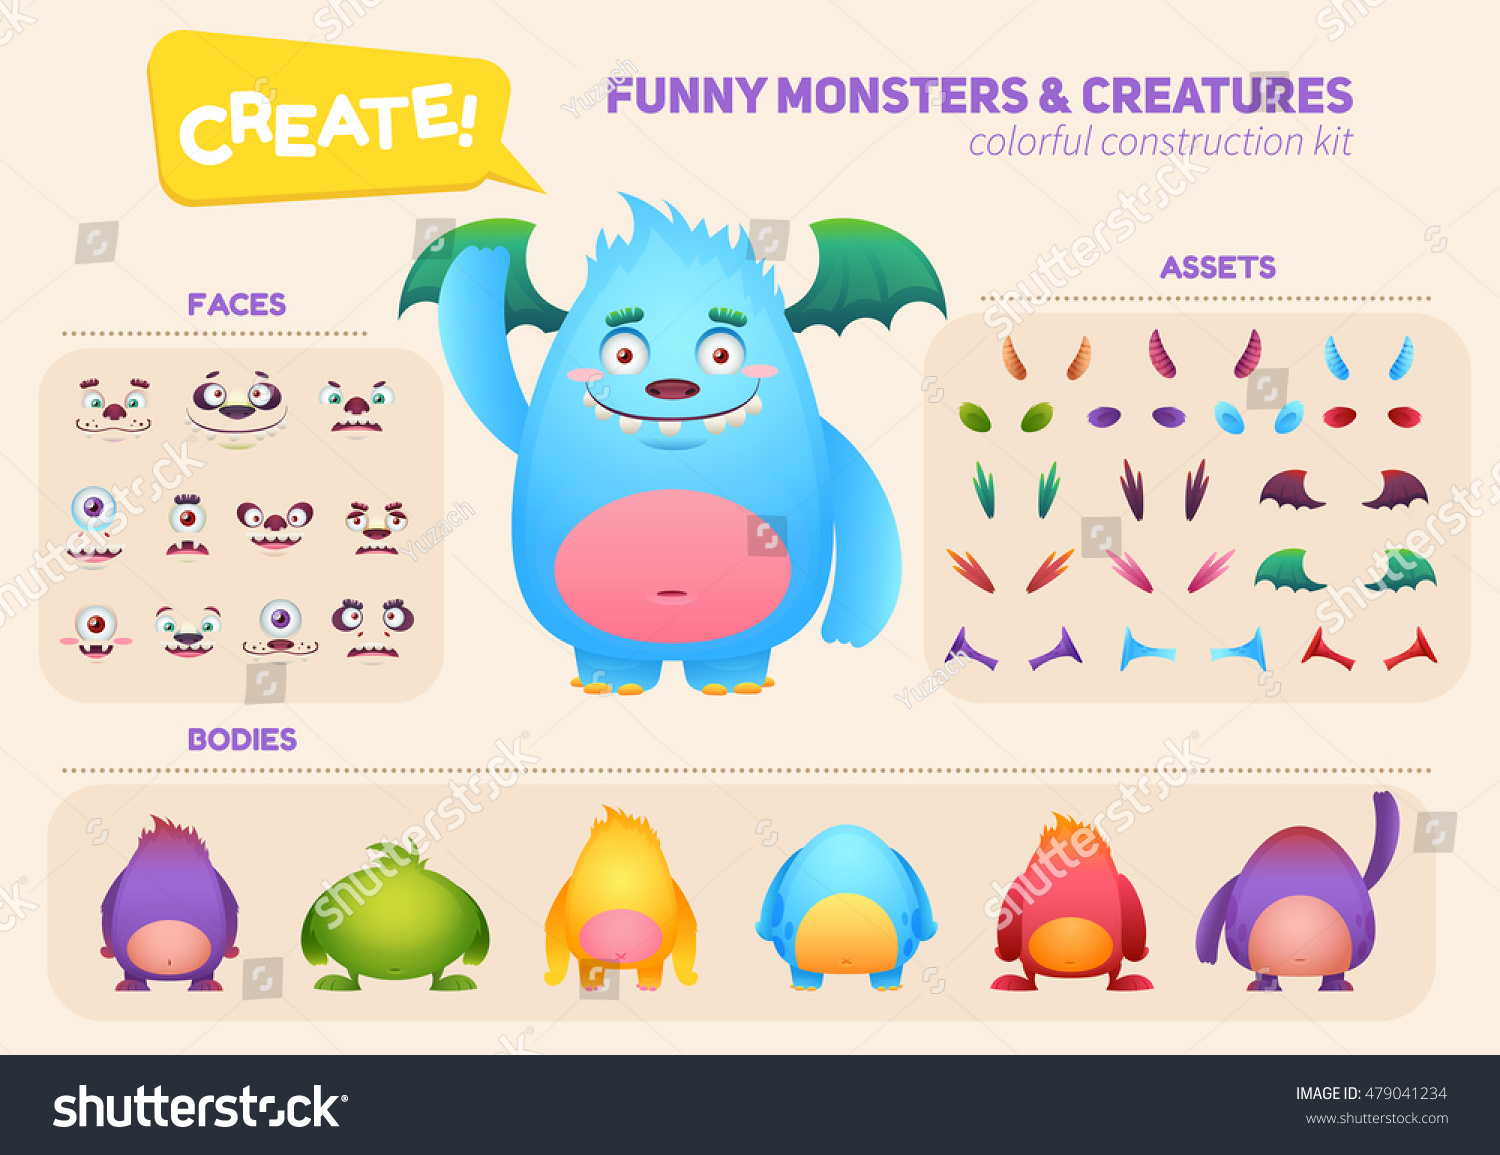 Cute Cartoon Monster Creation Kit Construction Stock